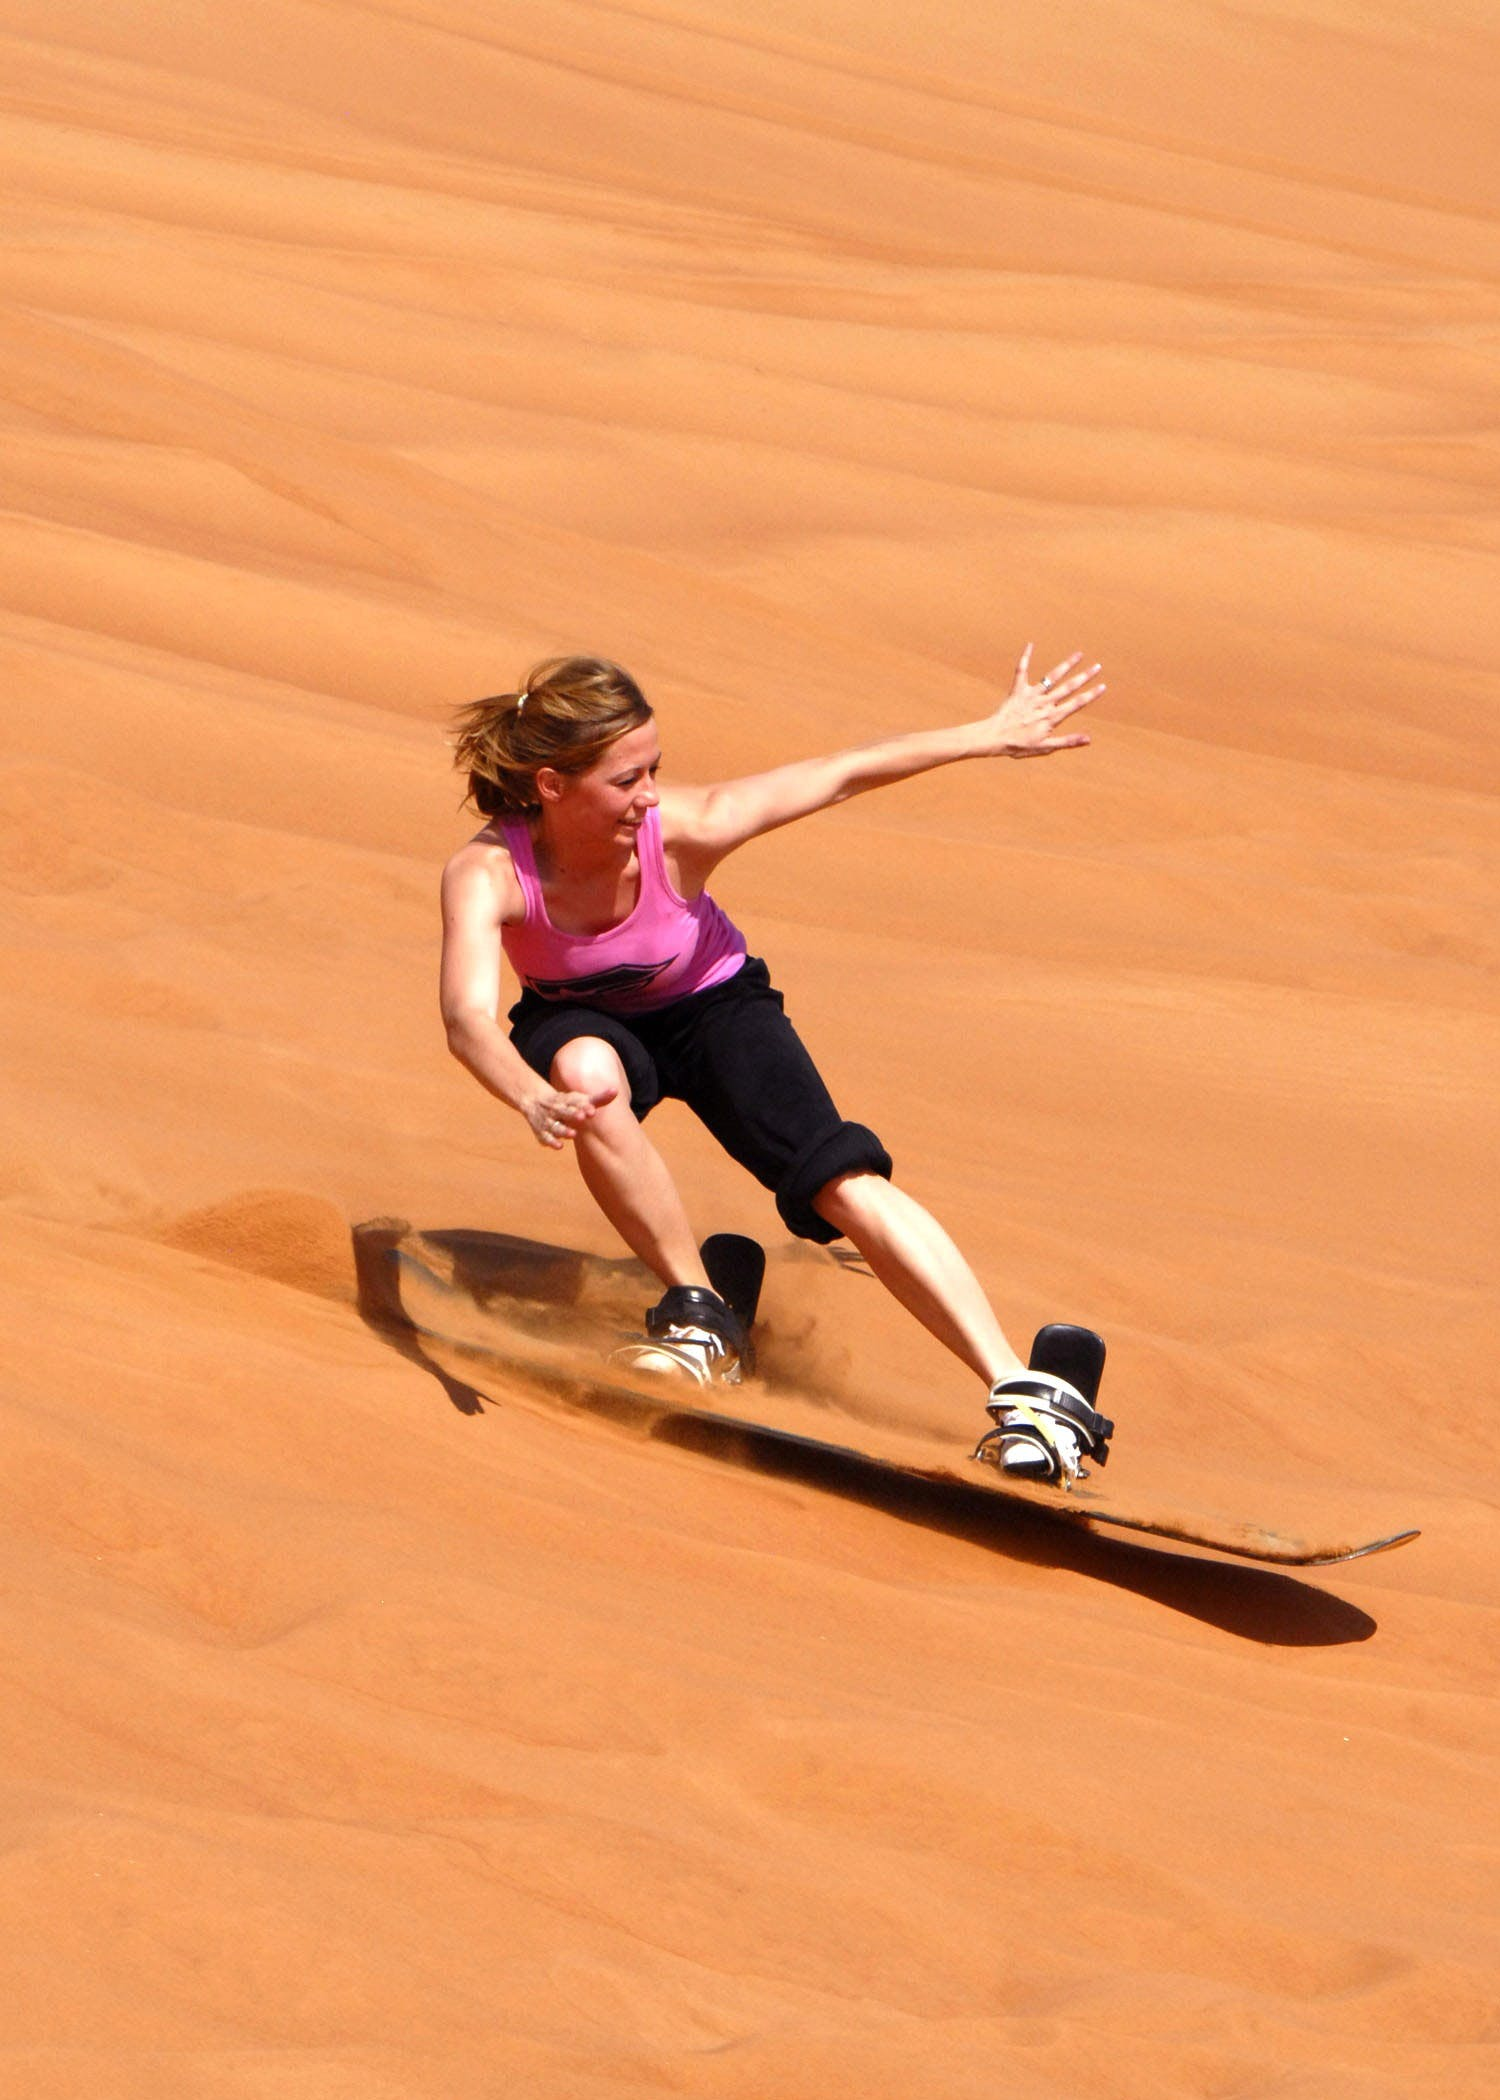 Free stock photo of person, sand, woman, desert